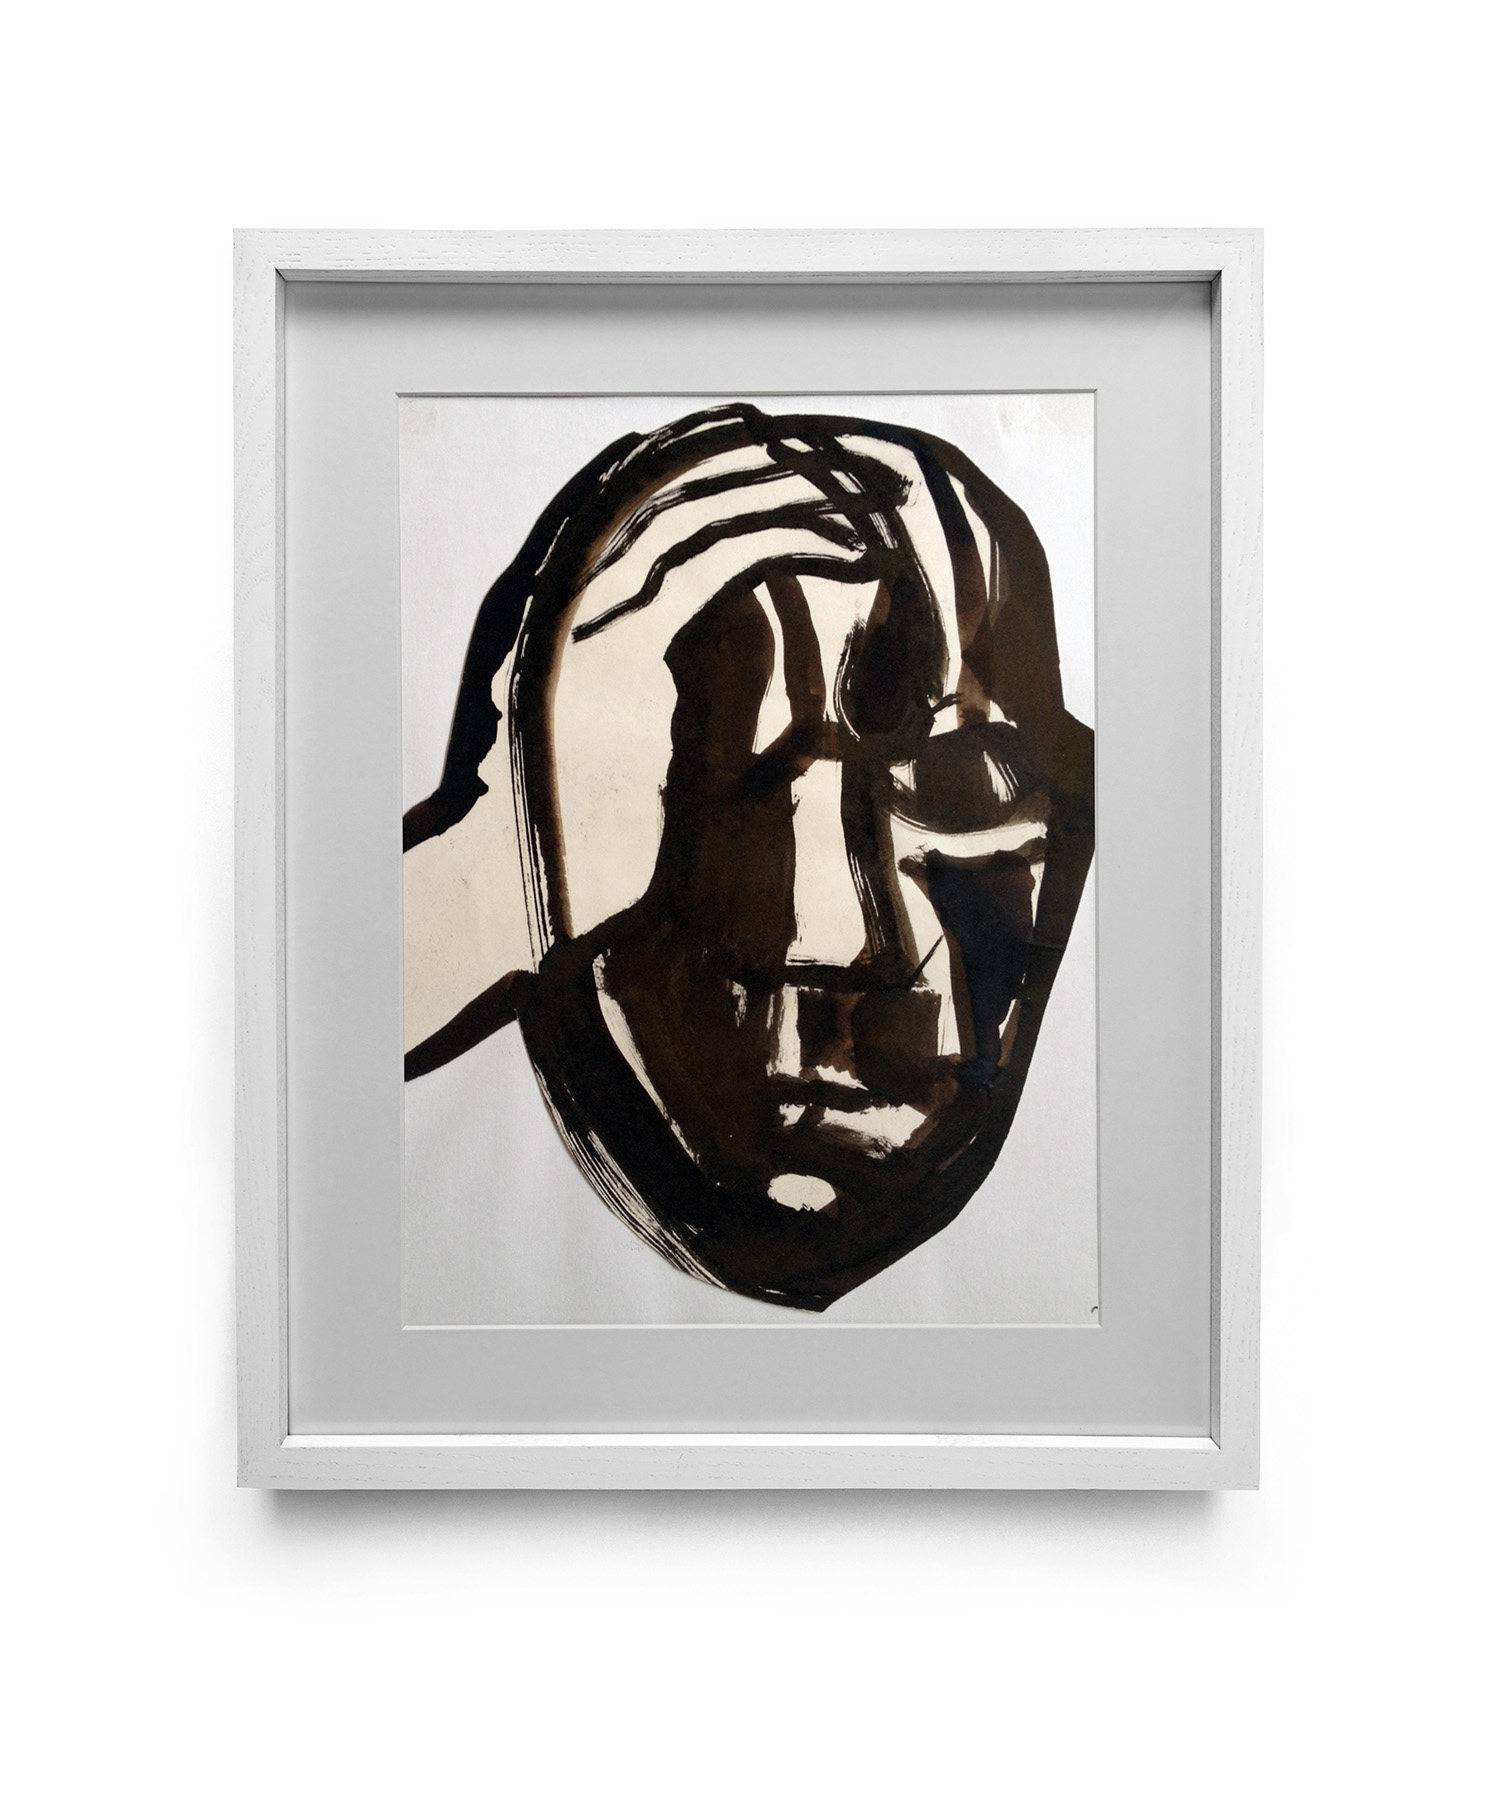 PABLO PICASSO TUSCH TECKNING 1990 - 1995